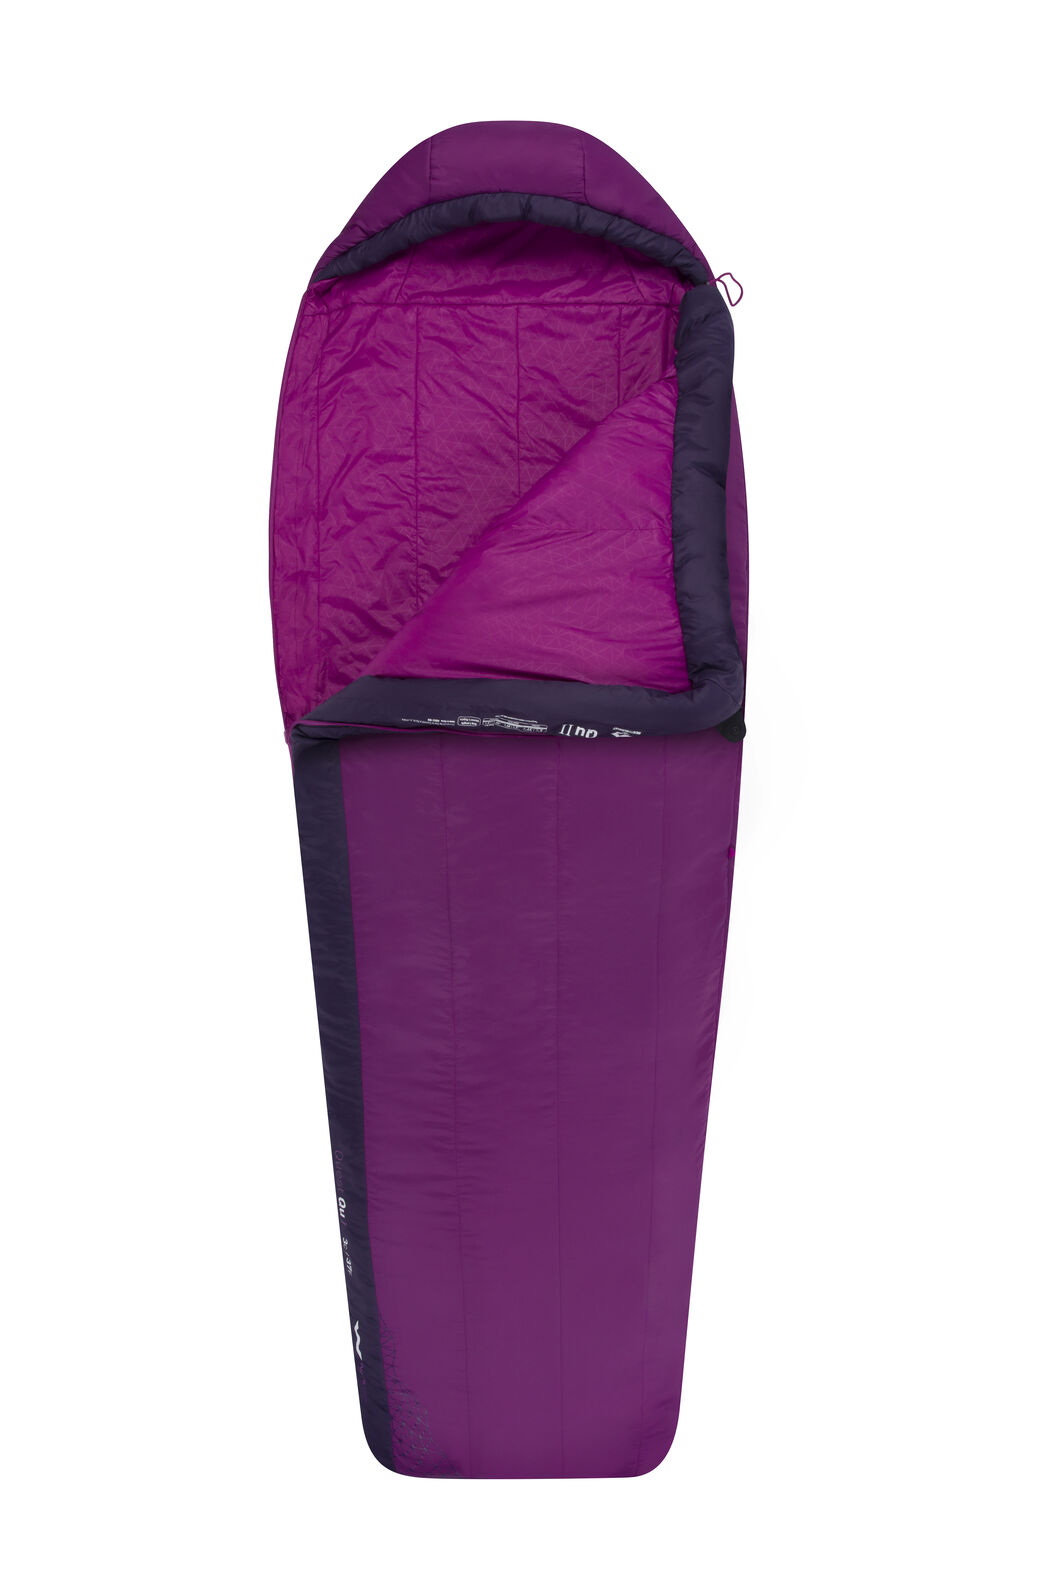 Sea to Summit Quest I Sleeping Bag - Women's Regular, Purple, hi-res